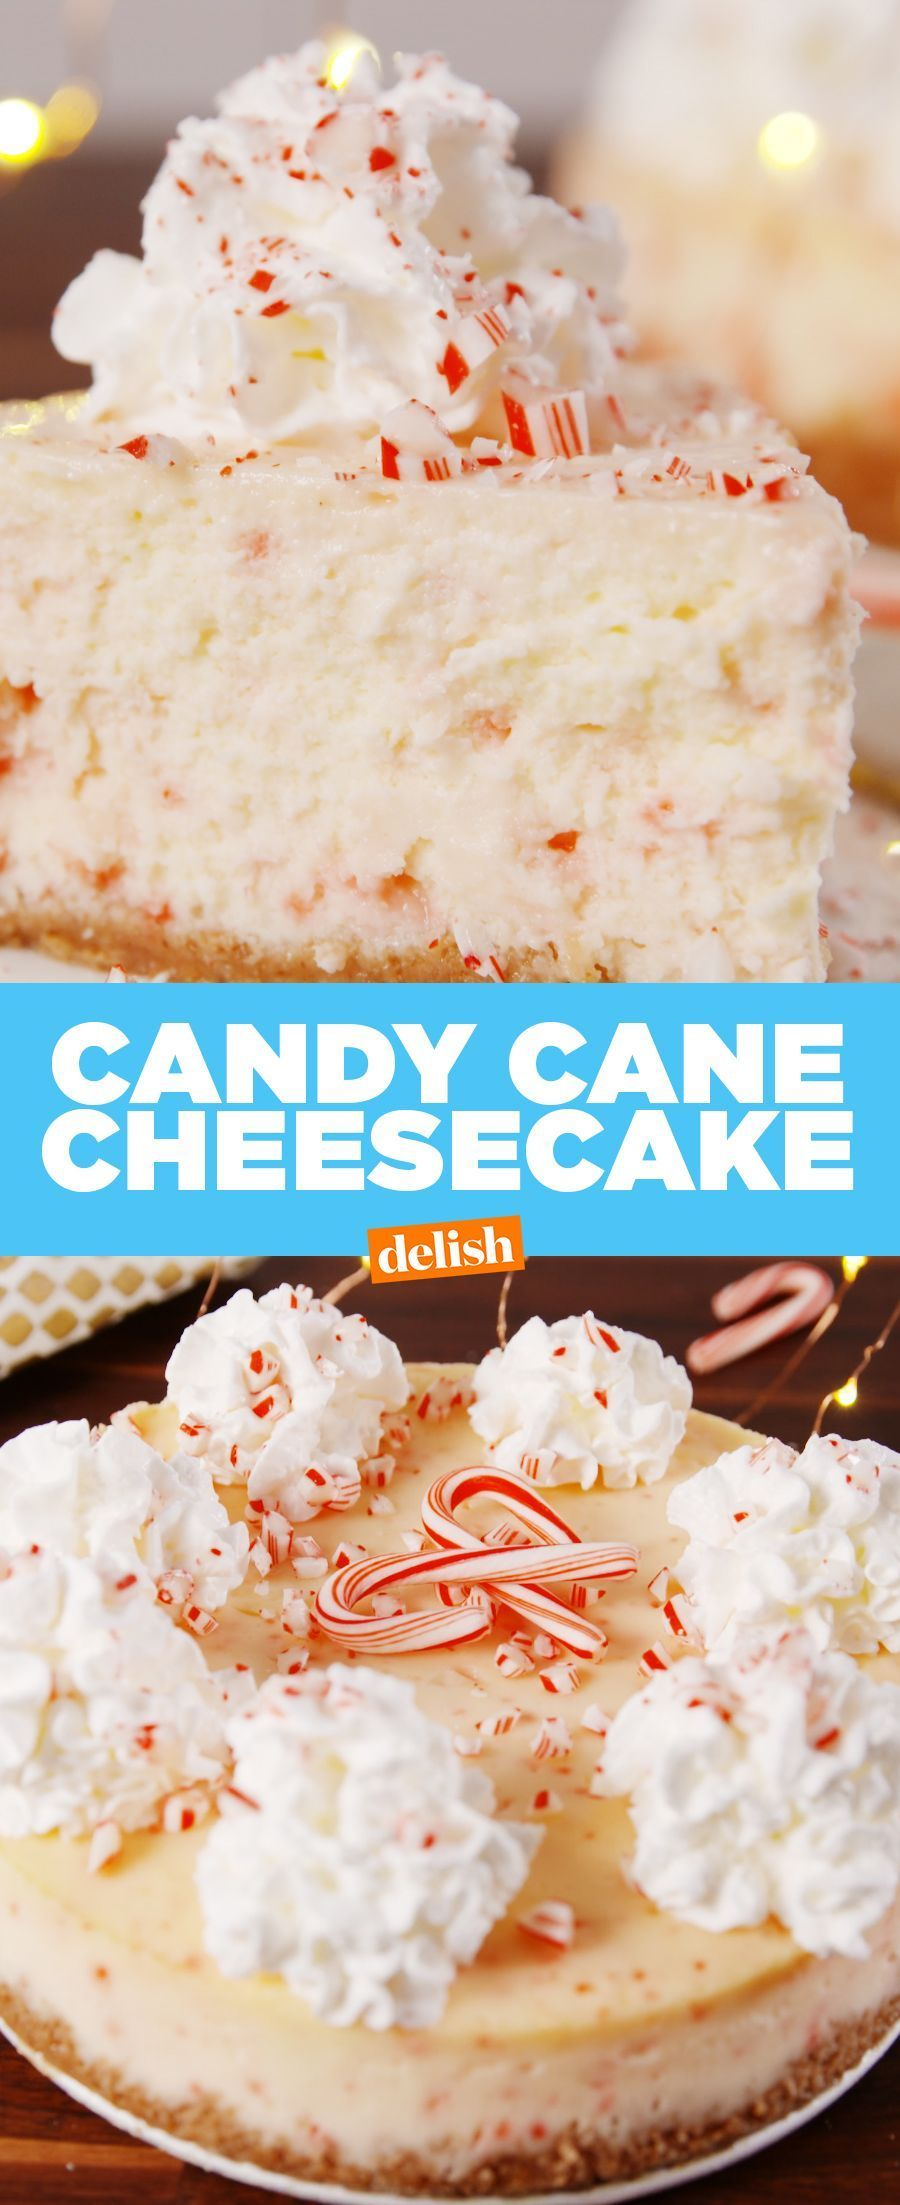 Buy Amazon: /31FY04s Cane Cheesecake All we want for Christmas is this INSANE Candy Cane Cheesecake. Get the recipe at .All we want for Christmas is this INSANE Candy Cane Cheesecake. Get the recipe at .